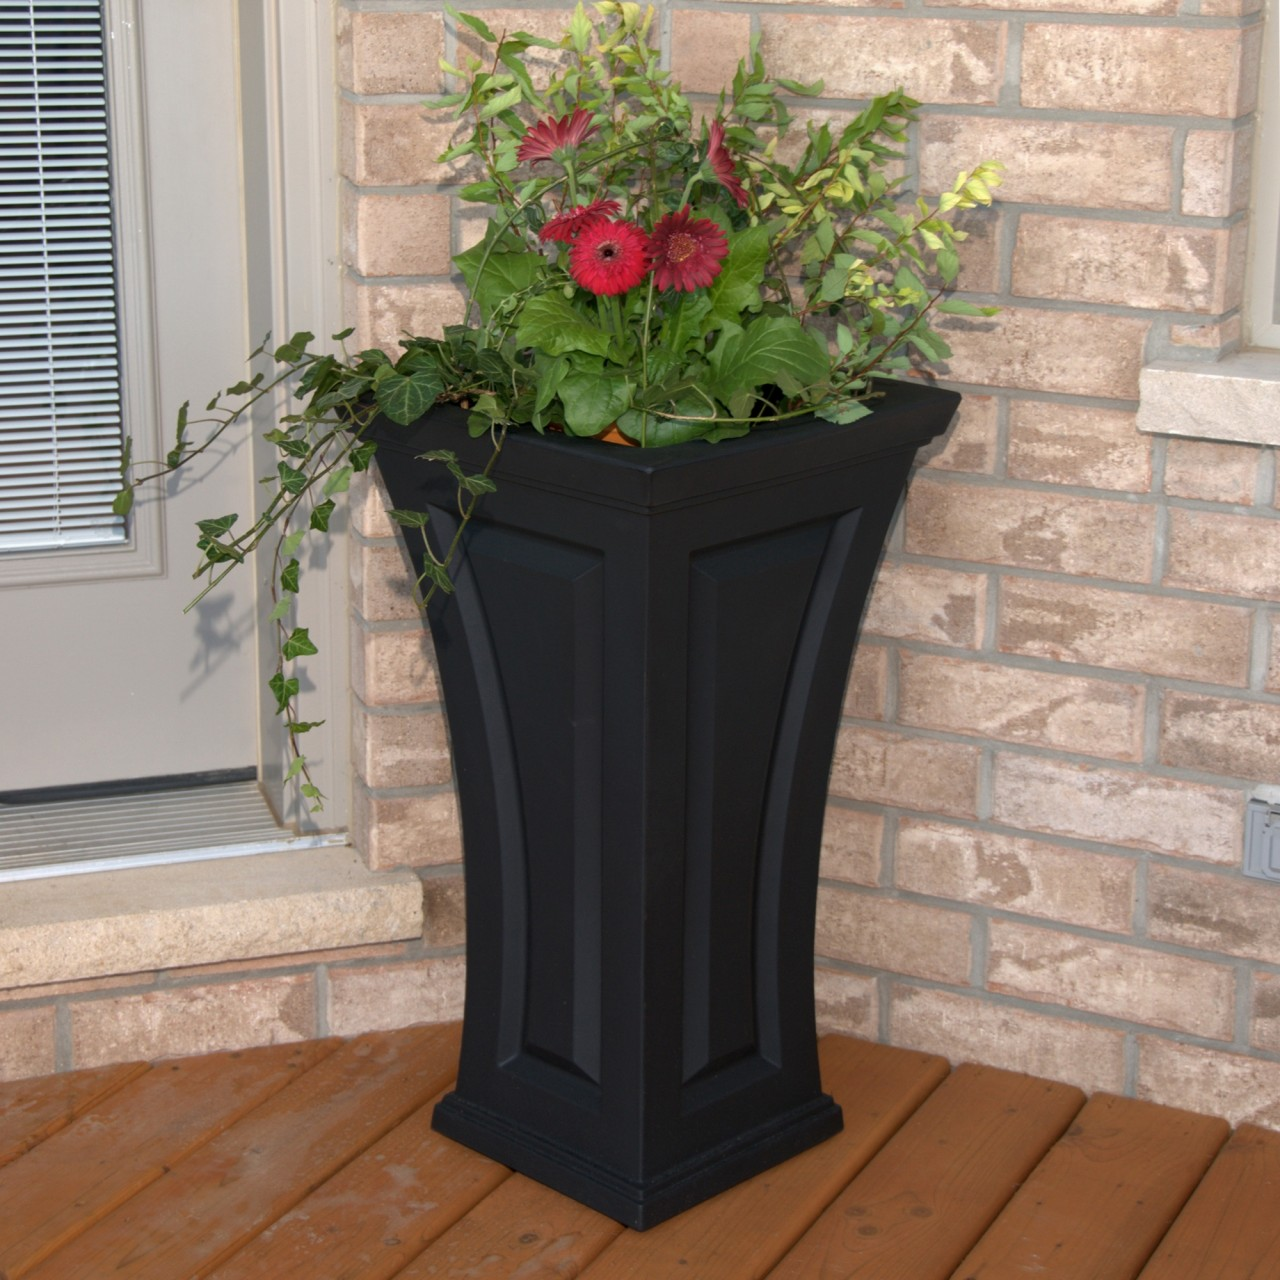 Tall outdoor planter ideas cambridge interior design ideas for Outdoor planter ideas